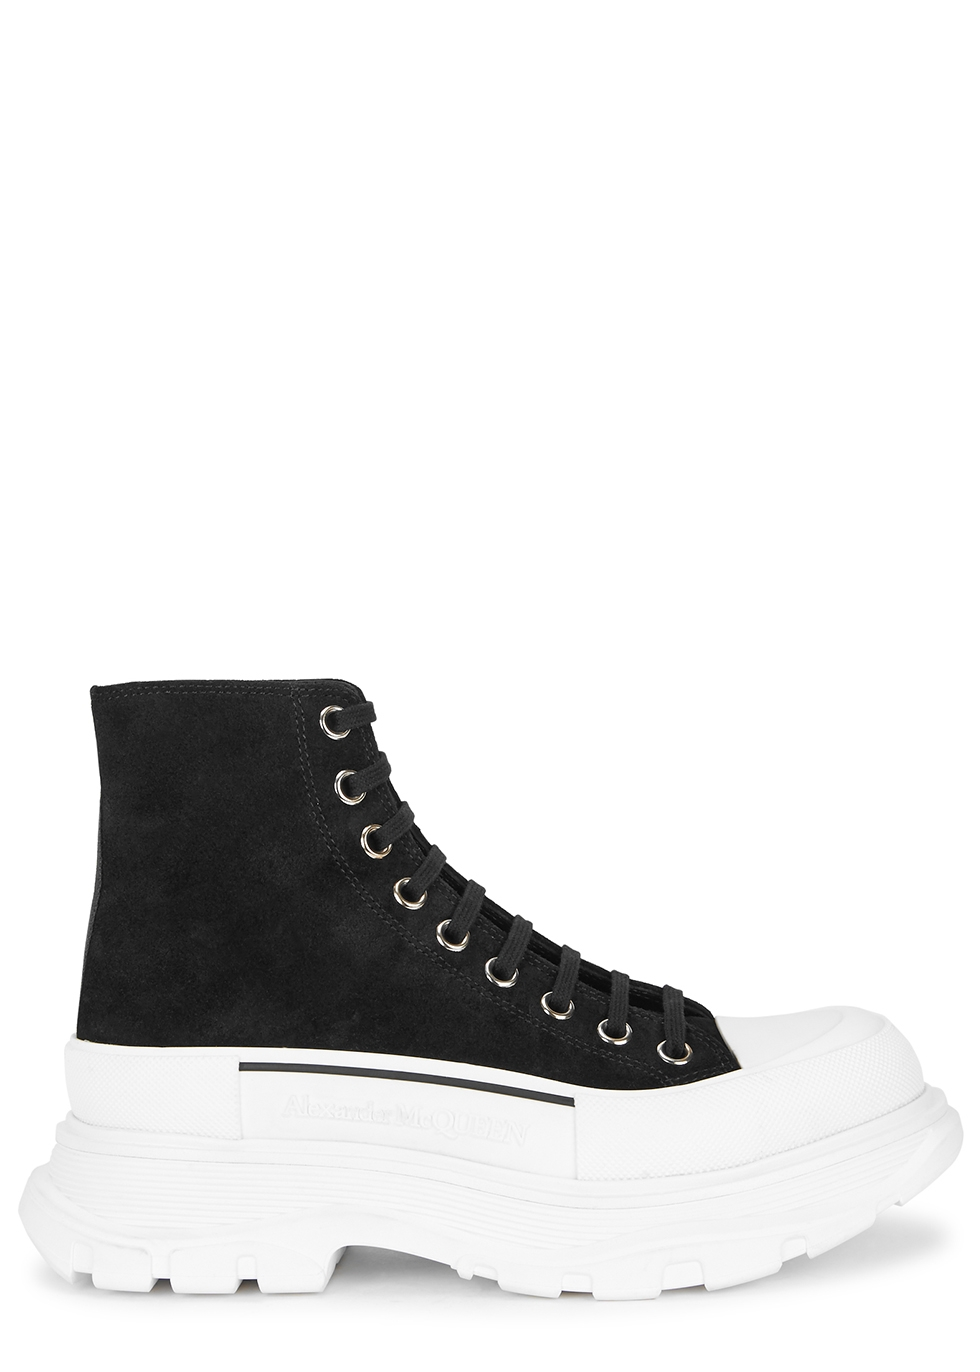 Tread Slick black suede hi-top sneakers